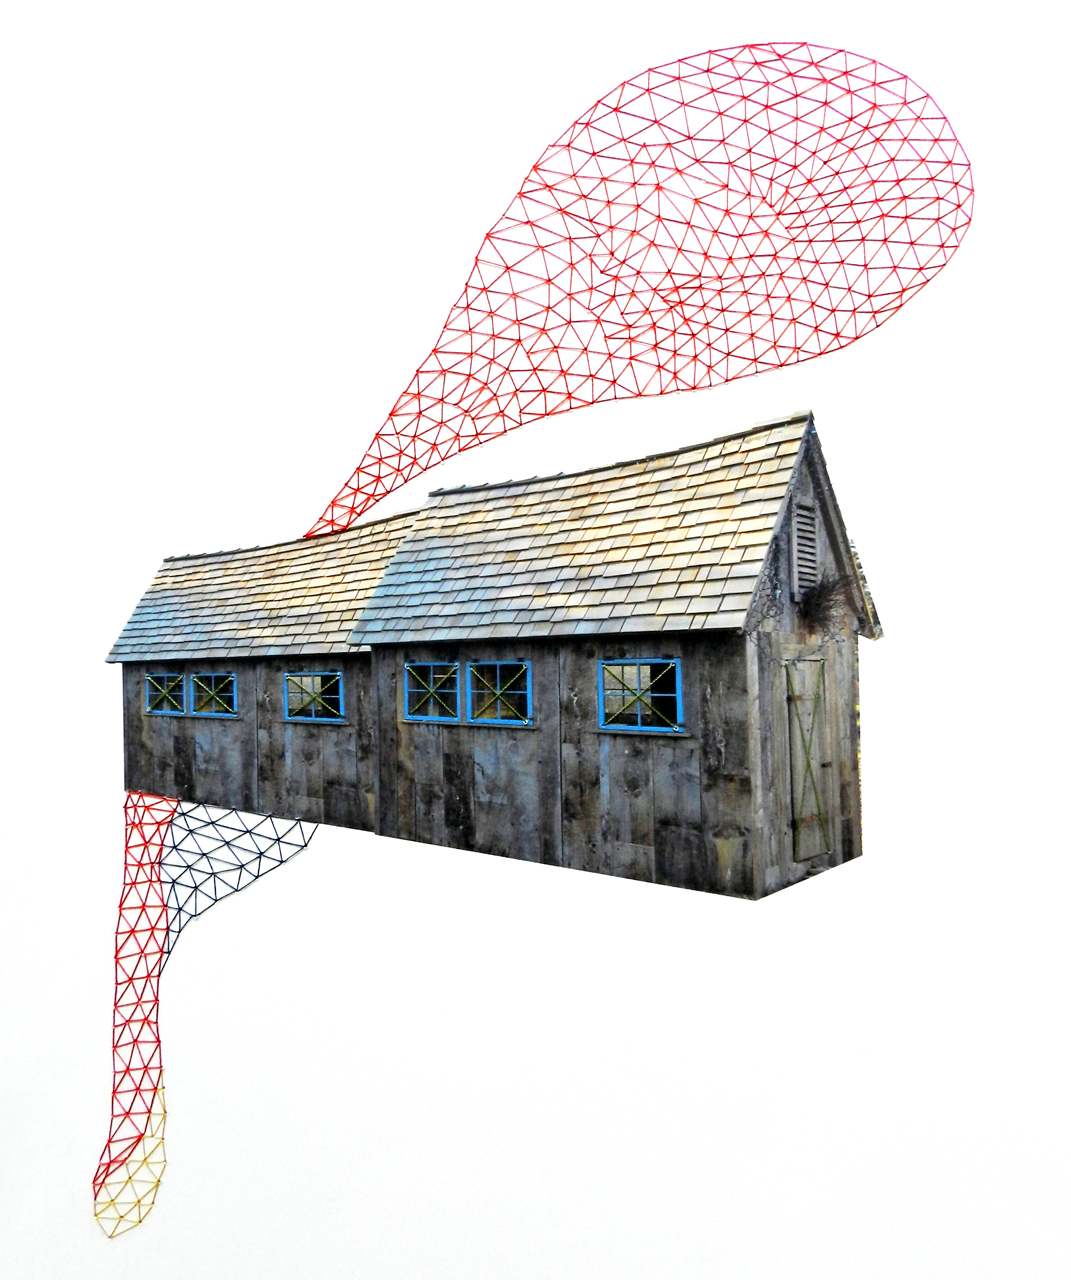 Embroidered Houses by Happy Red Fish